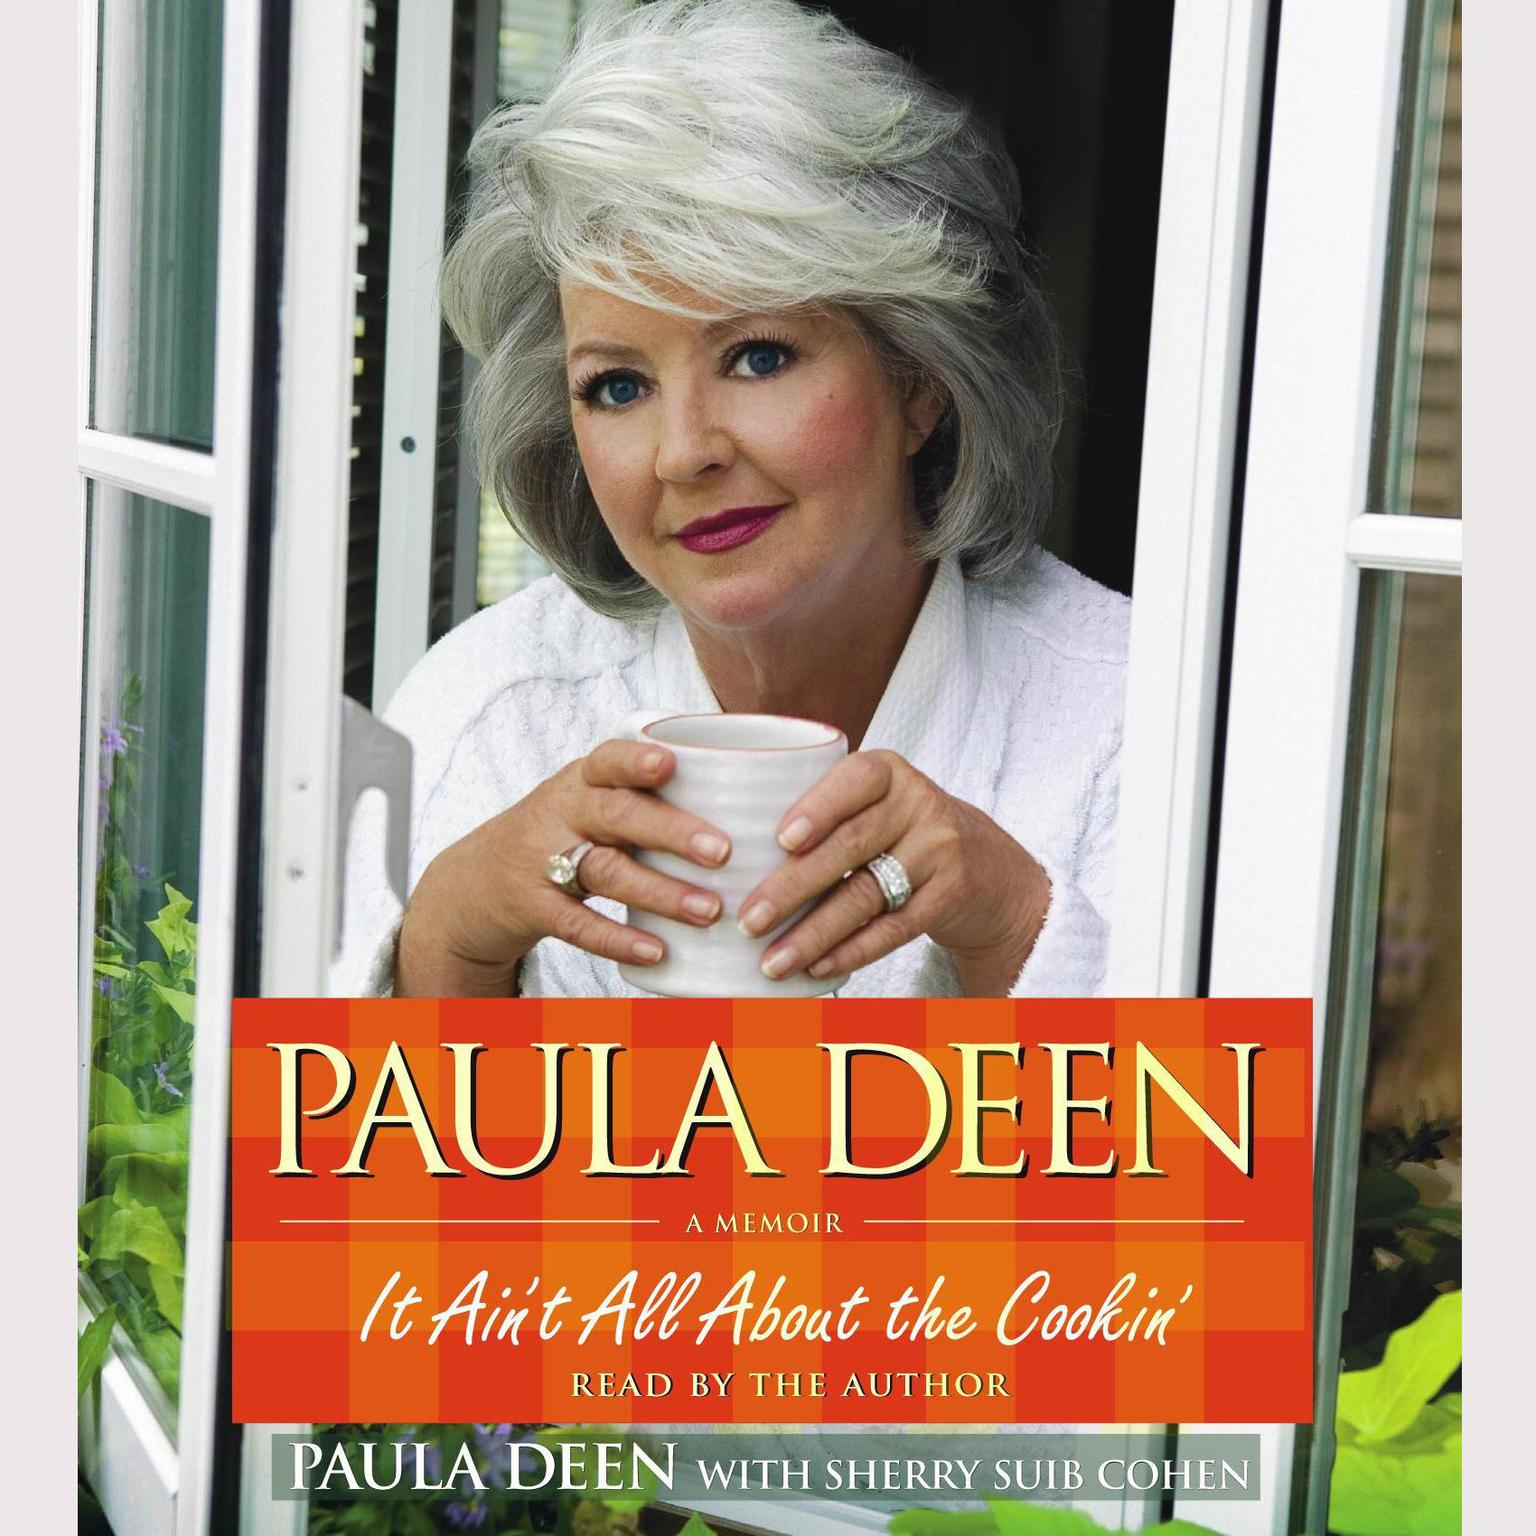 Printable Paula Deen: It Ain't All About the Cookin' Audiobook Cover Art